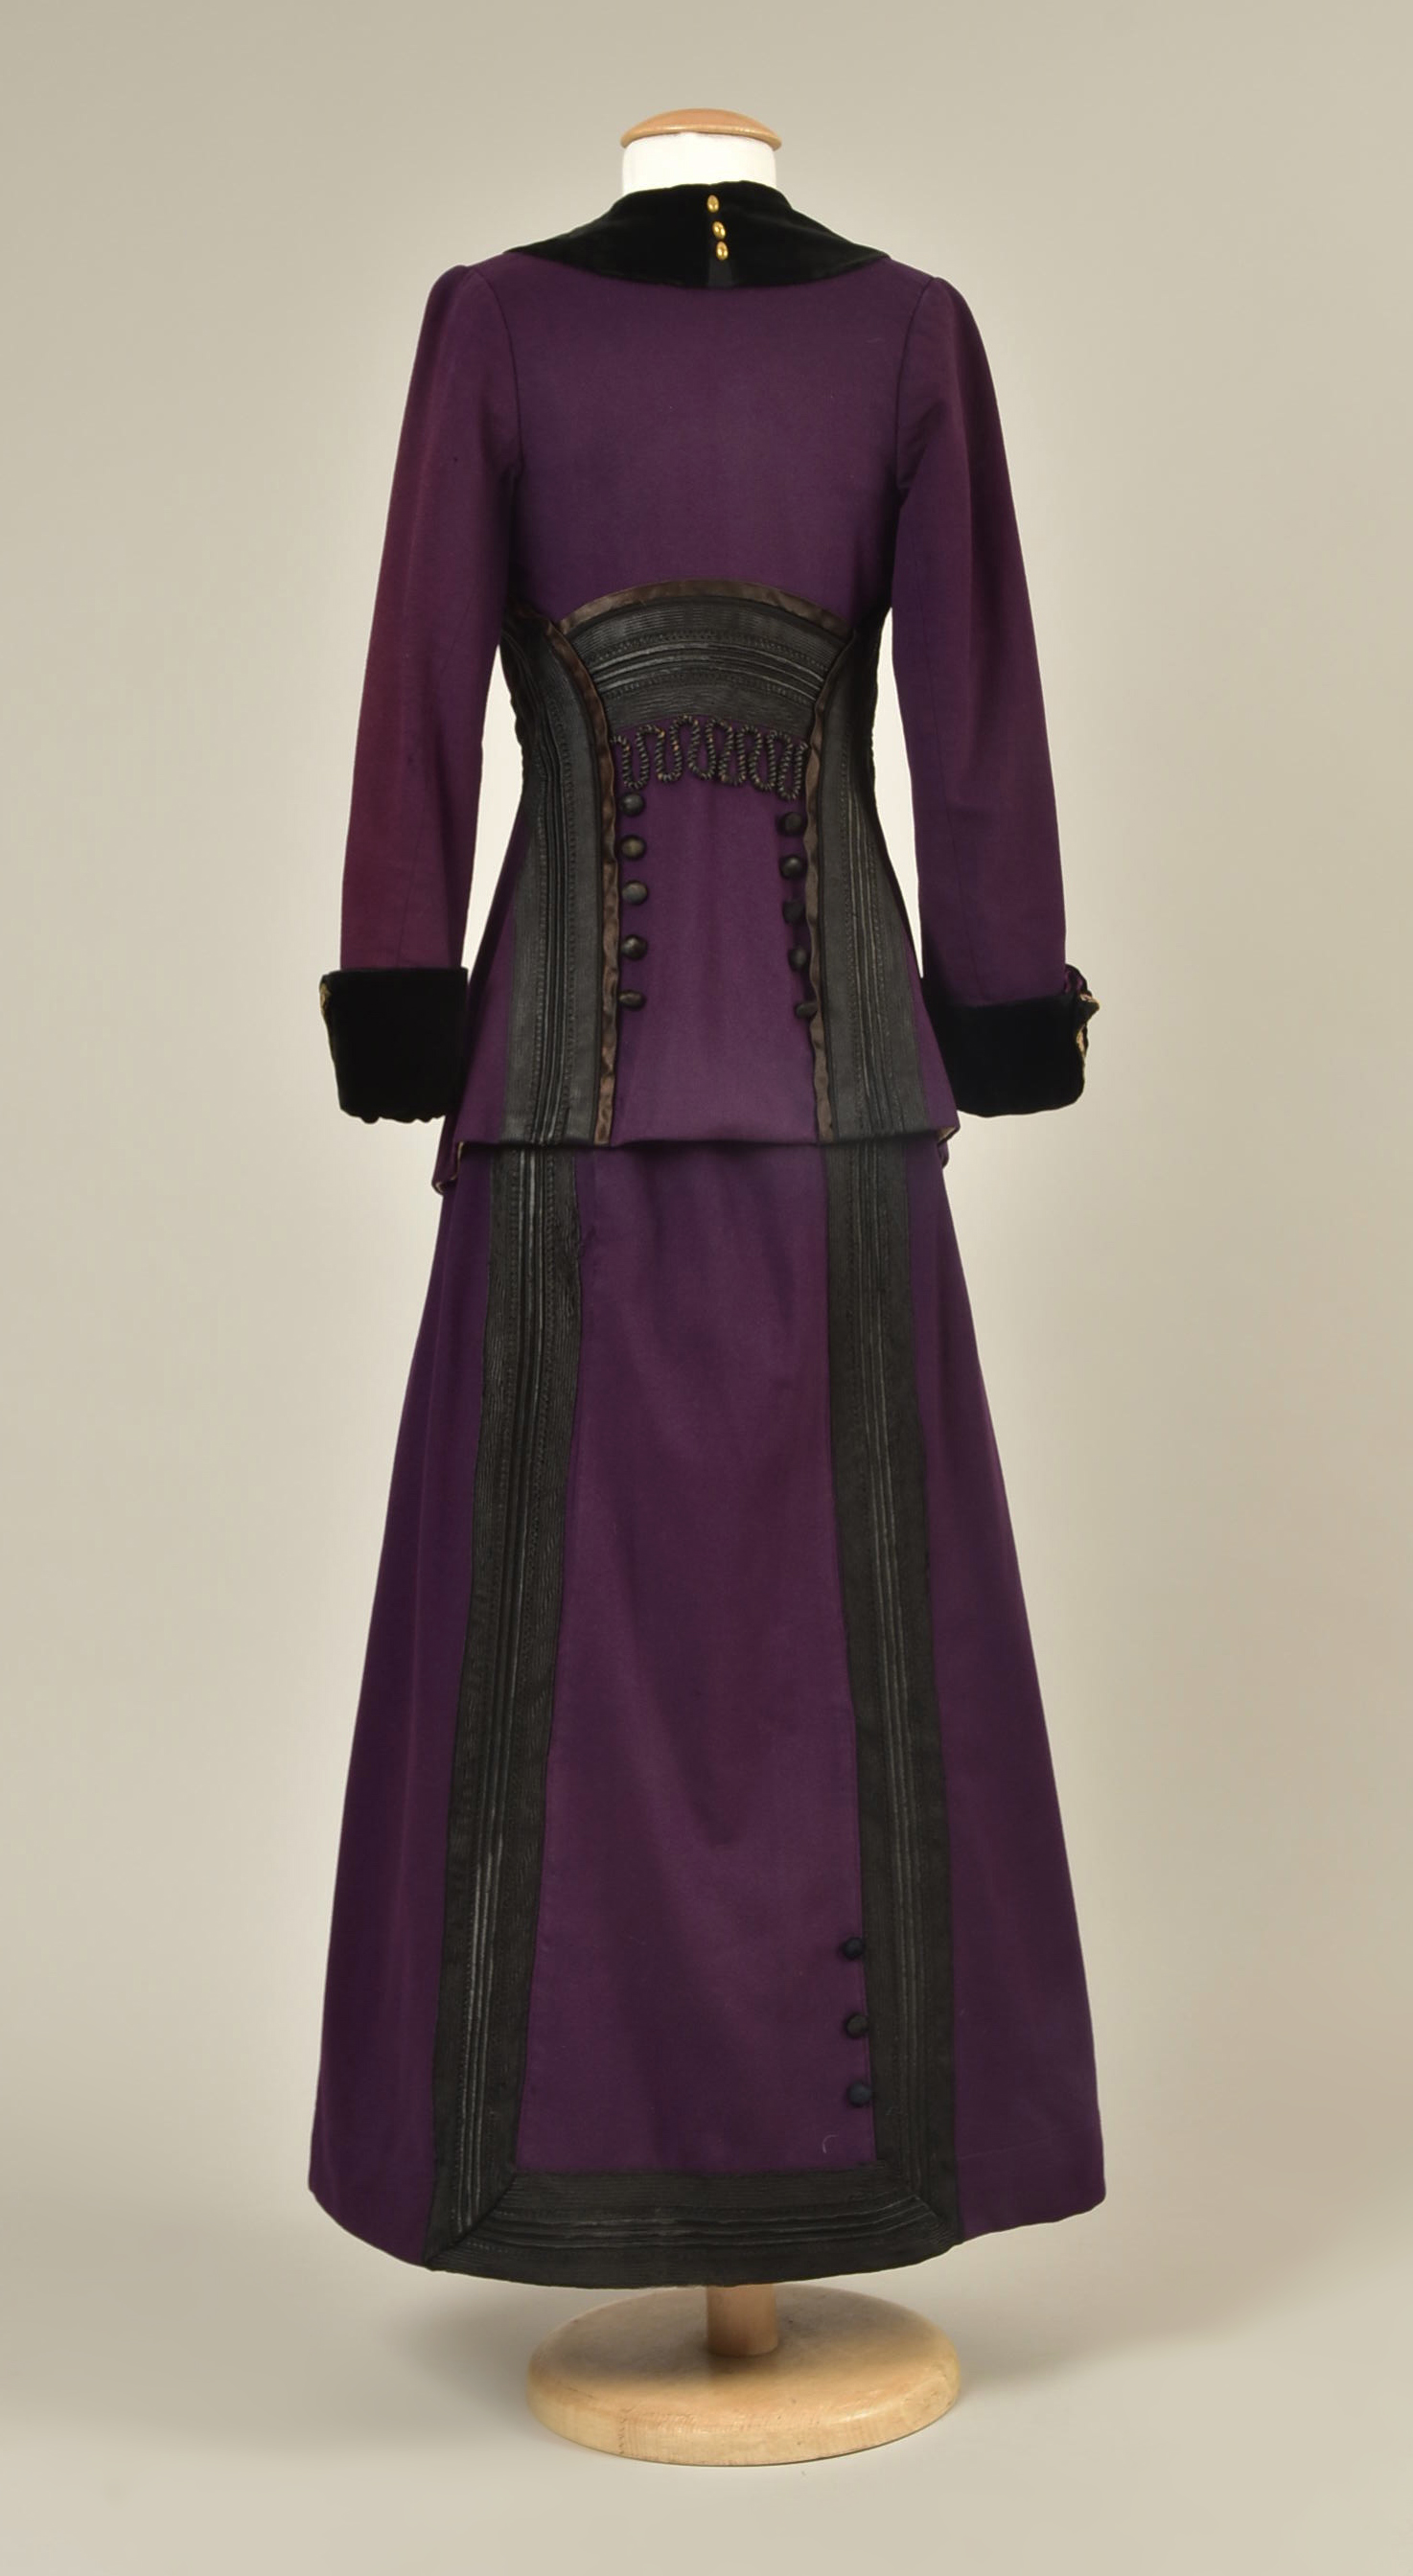 Wool suit with braided trim, ca 1912, Helen Larson Historic Costume Collection, Sold by Whitaker Auctions